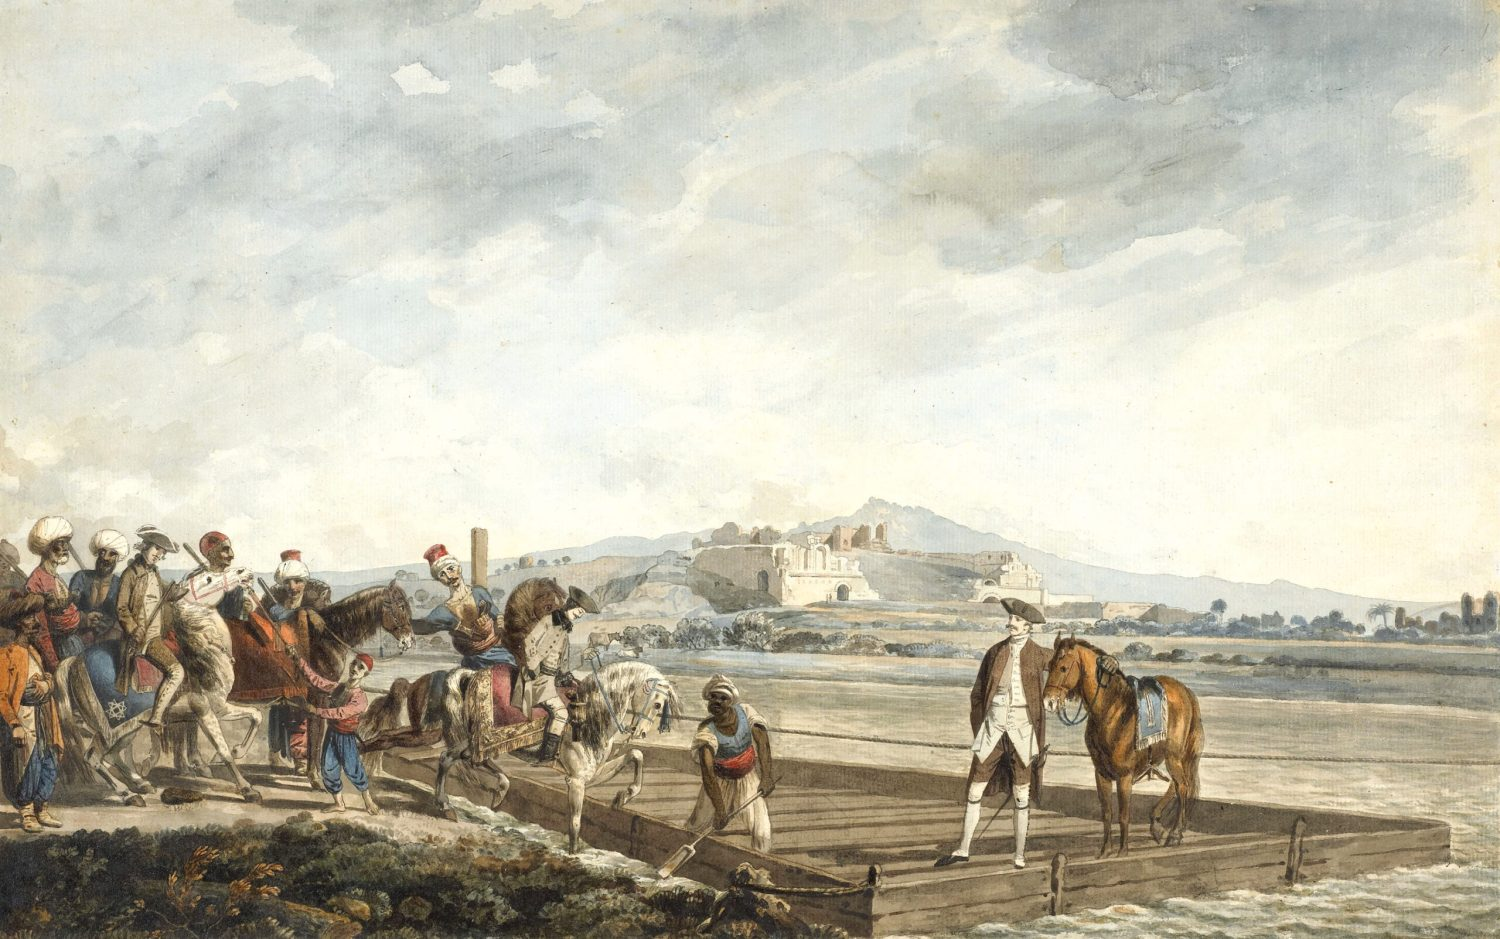 ABOVE The theatre at Miletus with the travellers crossing the river in a ferry, October 1764. Pen and black ink with watercolour and gum arabic. Size: 296 x